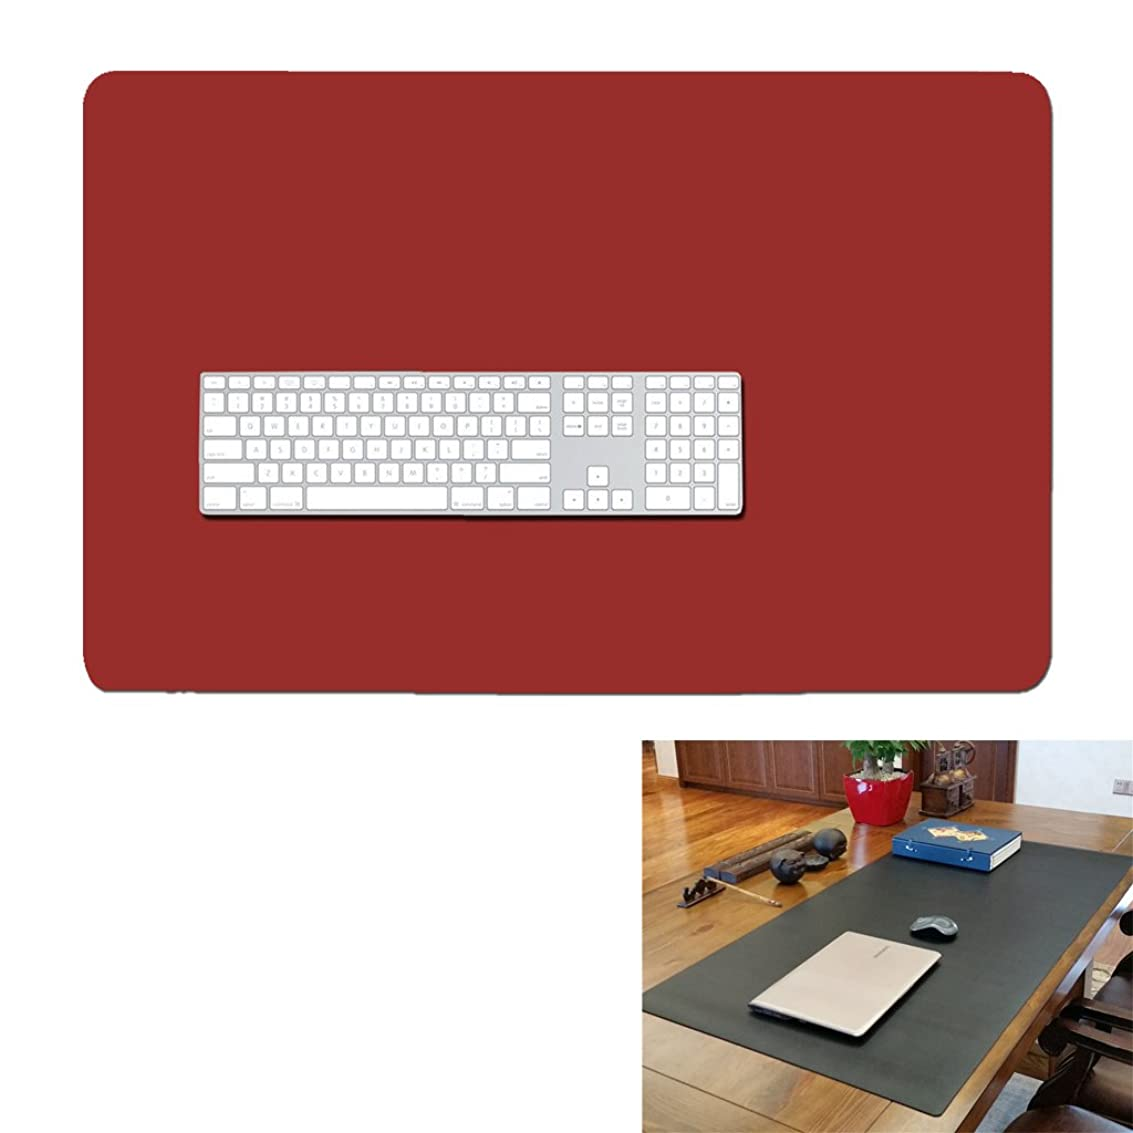 27'' 17'' Extended Gaming Mouse Pad- Large Waterproof Desk Mat- PU Leather Computer Mat for Office and Home (Wine red) zogir0195615283